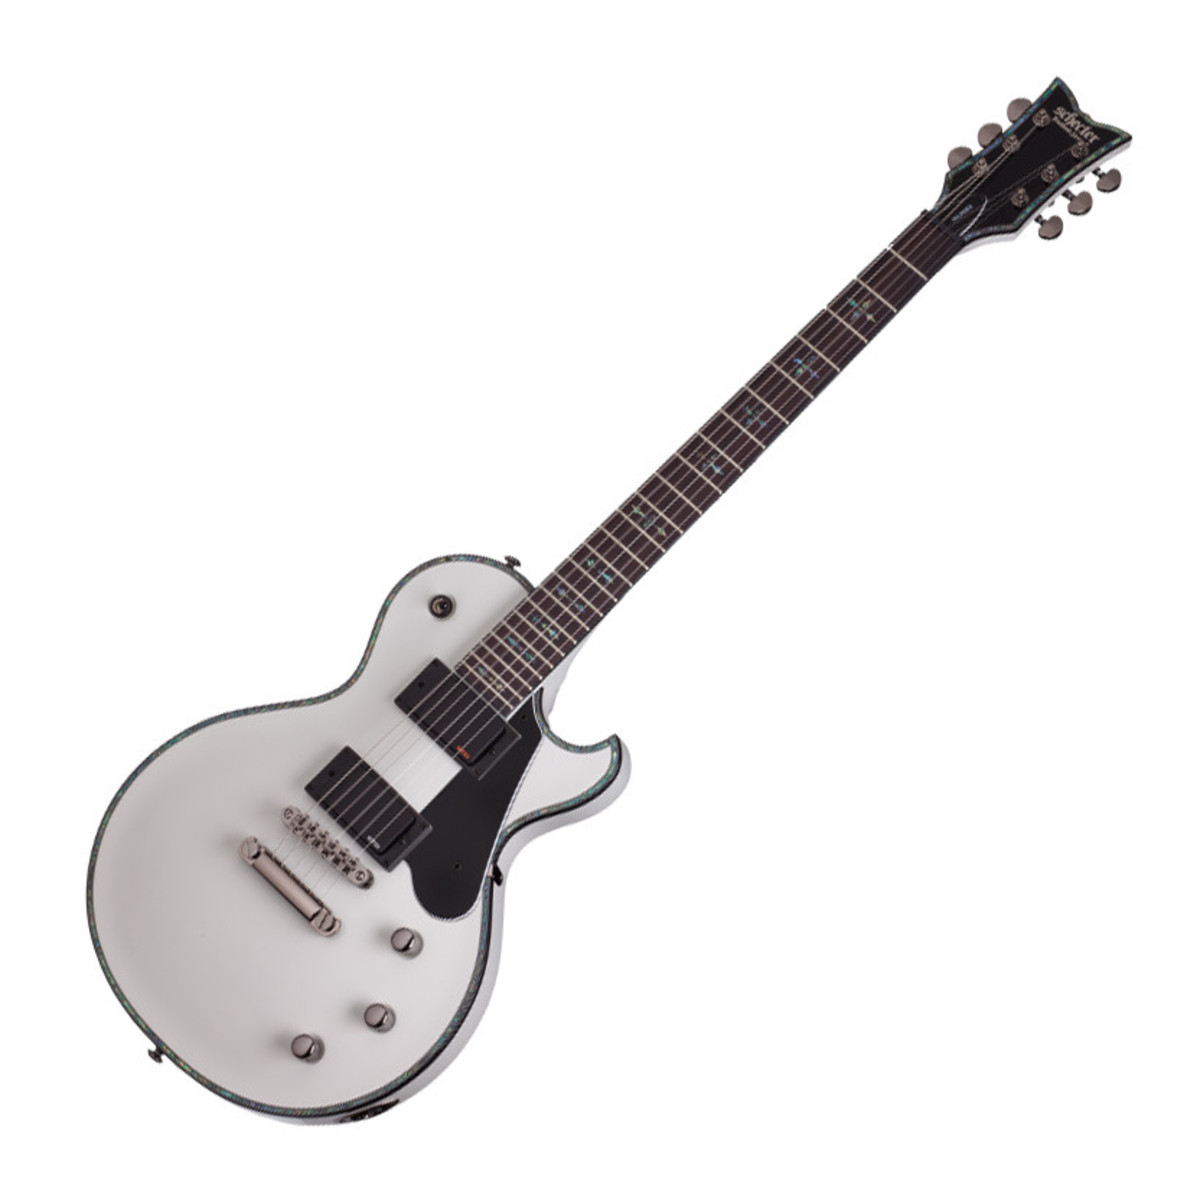 schecter hellraiser solo ii electric guitar gloss white at. Black Bedroom Furniture Sets. Home Design Ideas